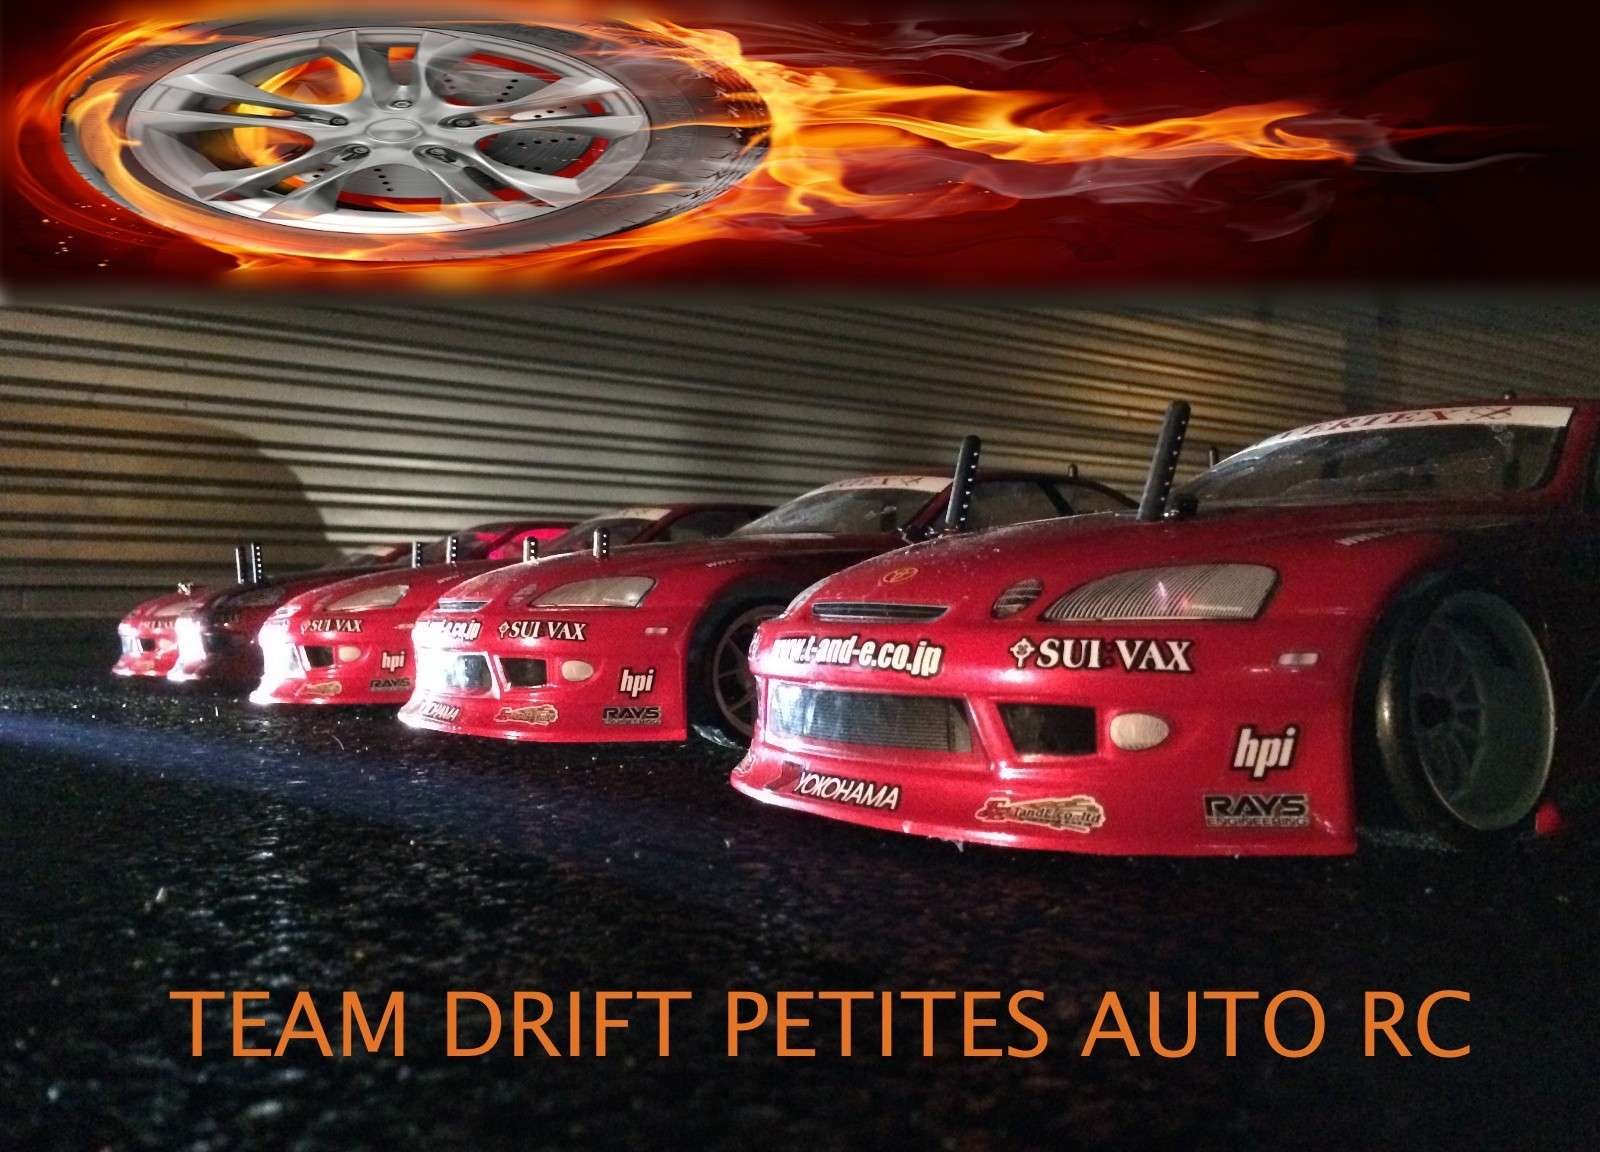 TEAM DRIFT PETITES AUTOS RC